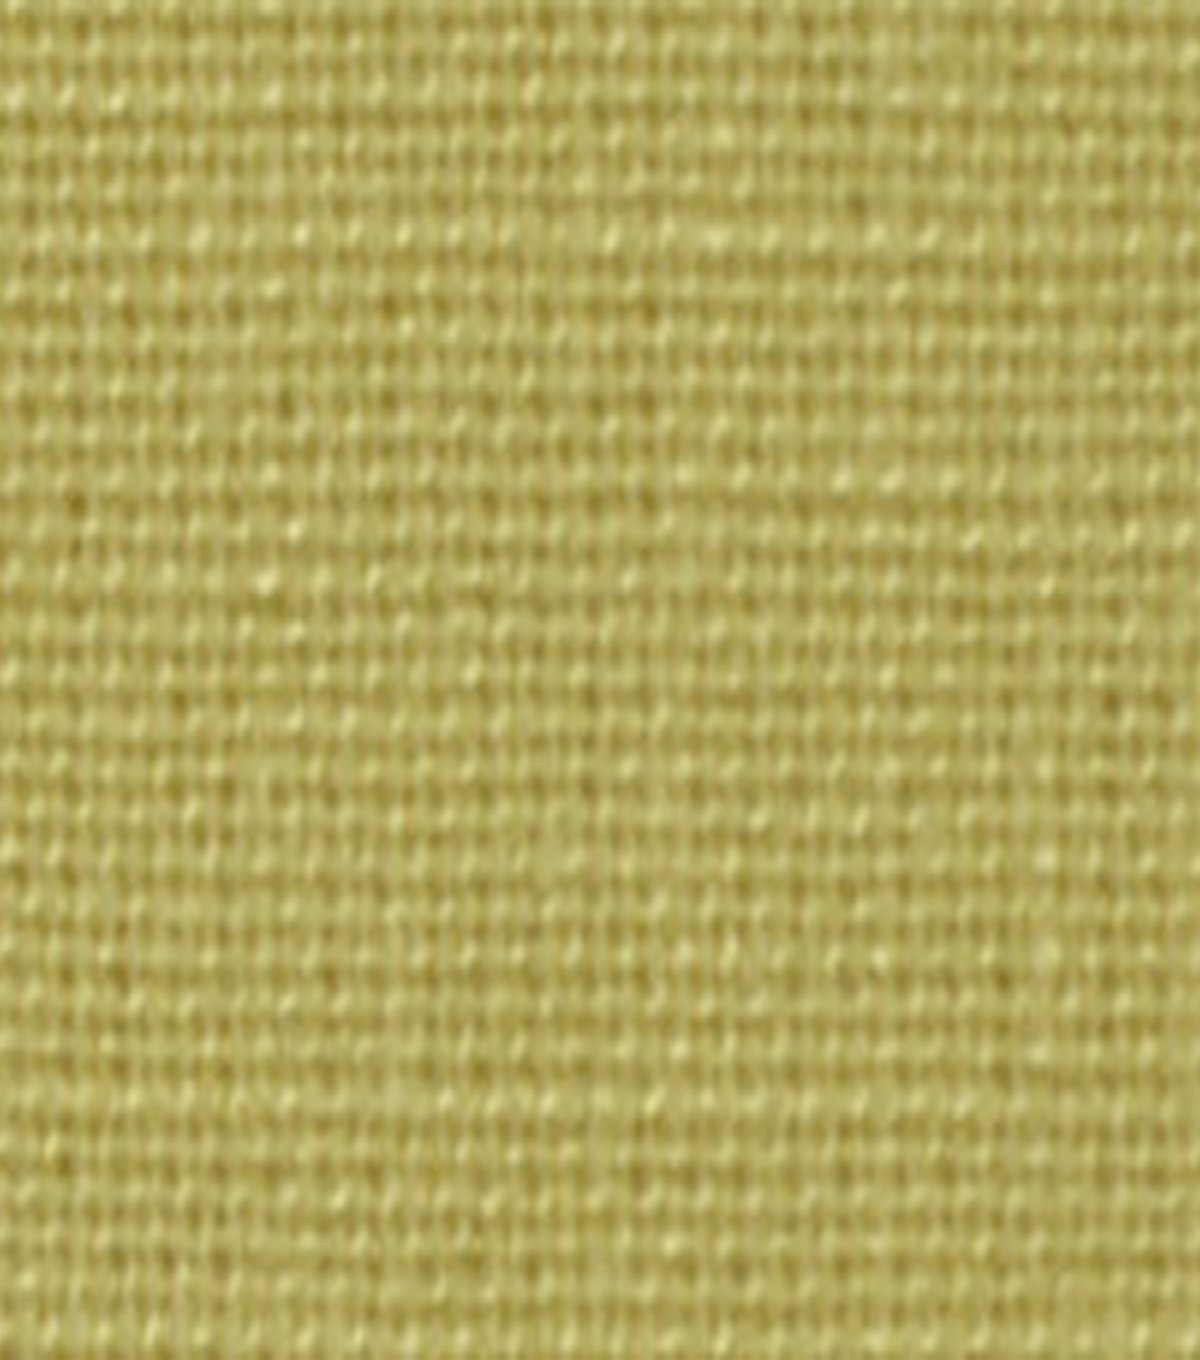 Home Decor 8\u0022x8\u0022 Fabric Swatch-Robert Allen Jaden Celery